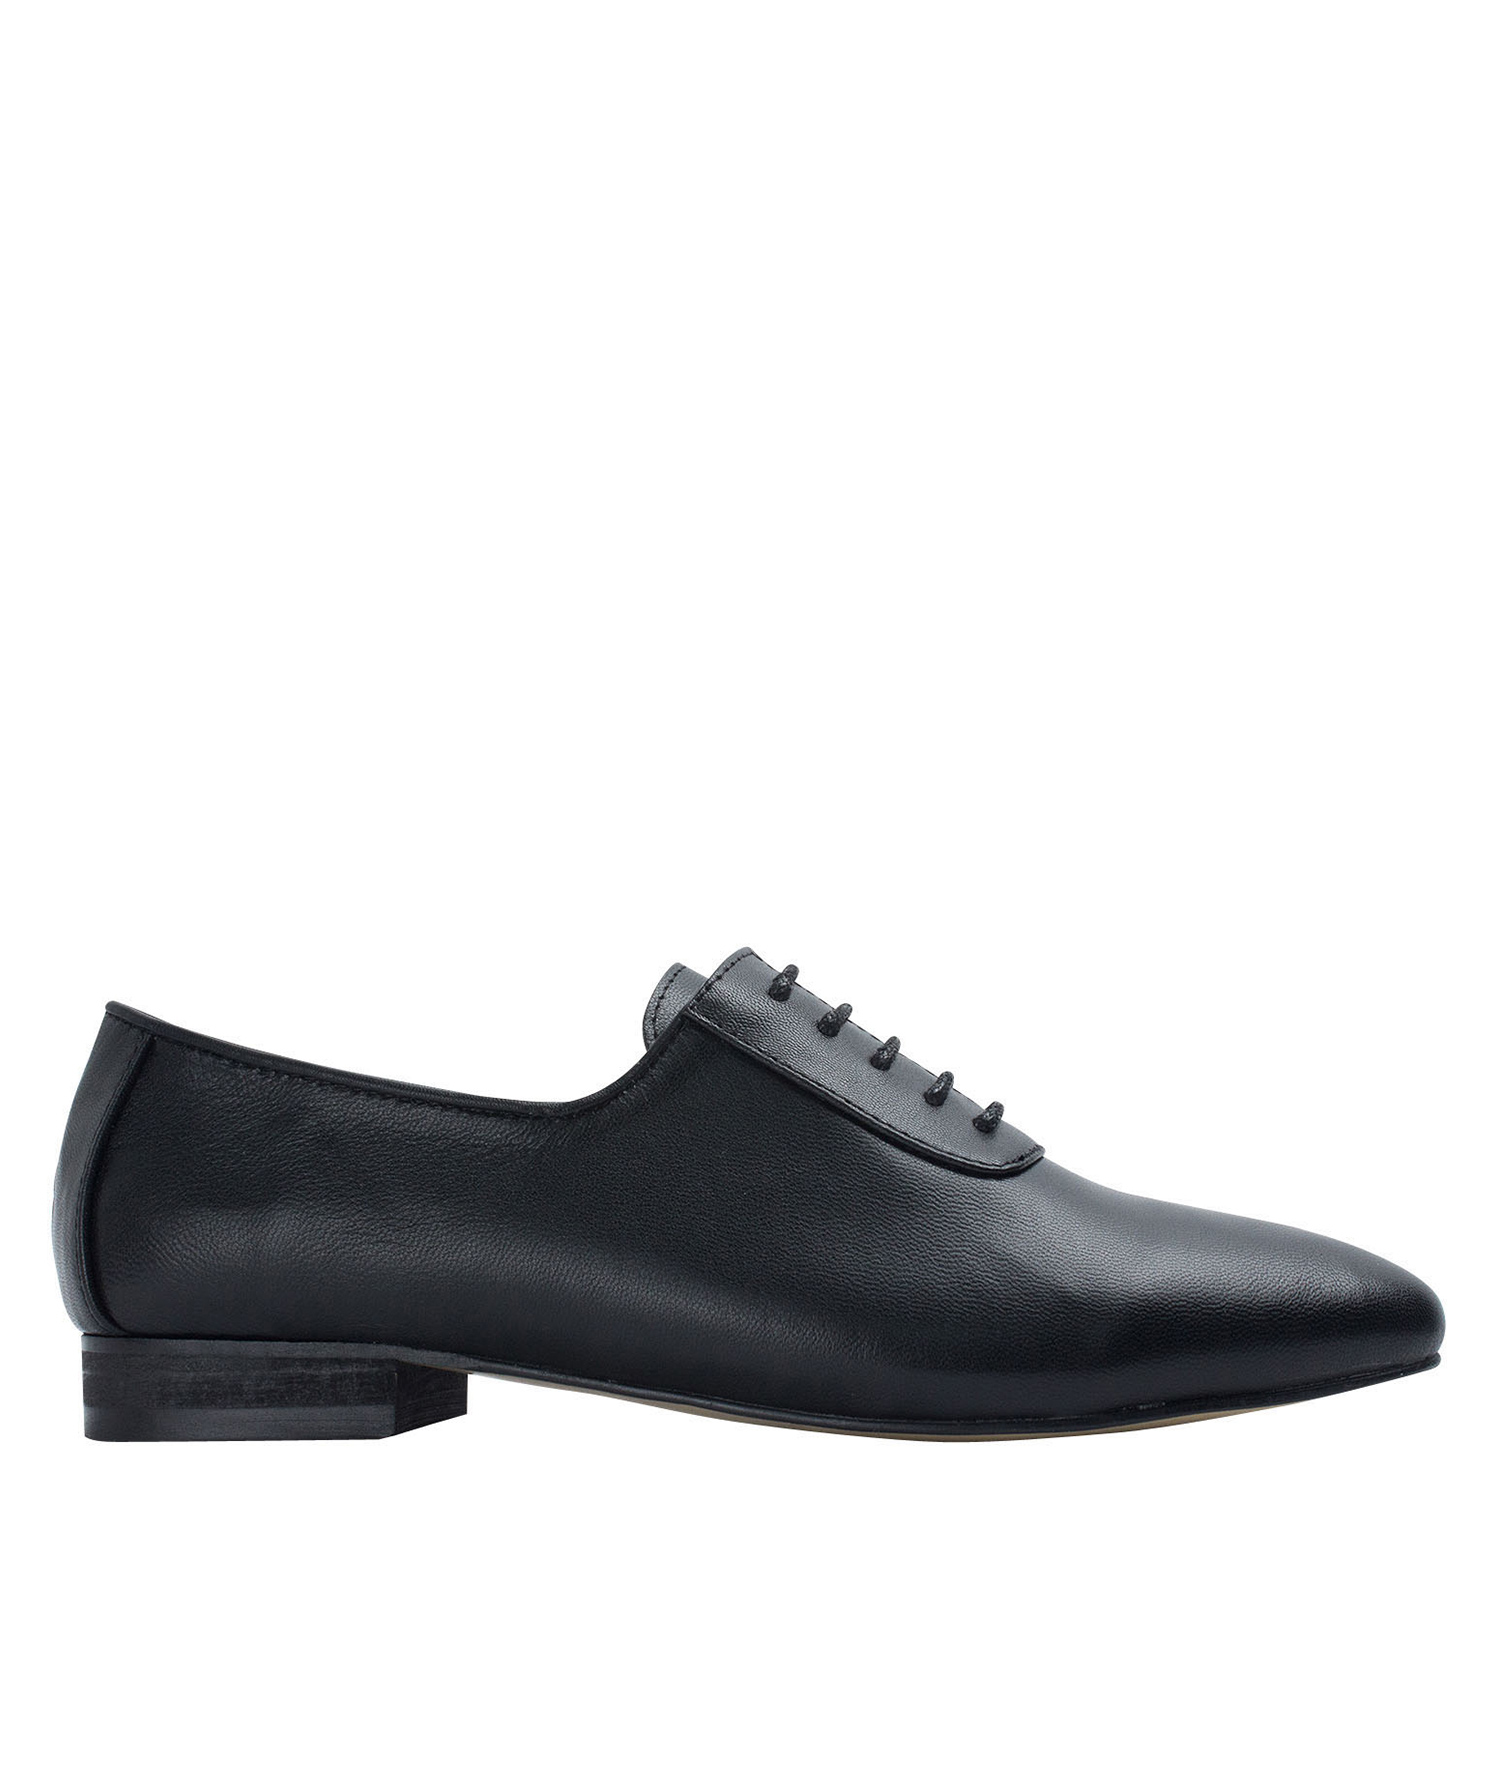 3aabaad81e AnnaKastle Womens Sleek Leather Lace-Up Oxfords Black